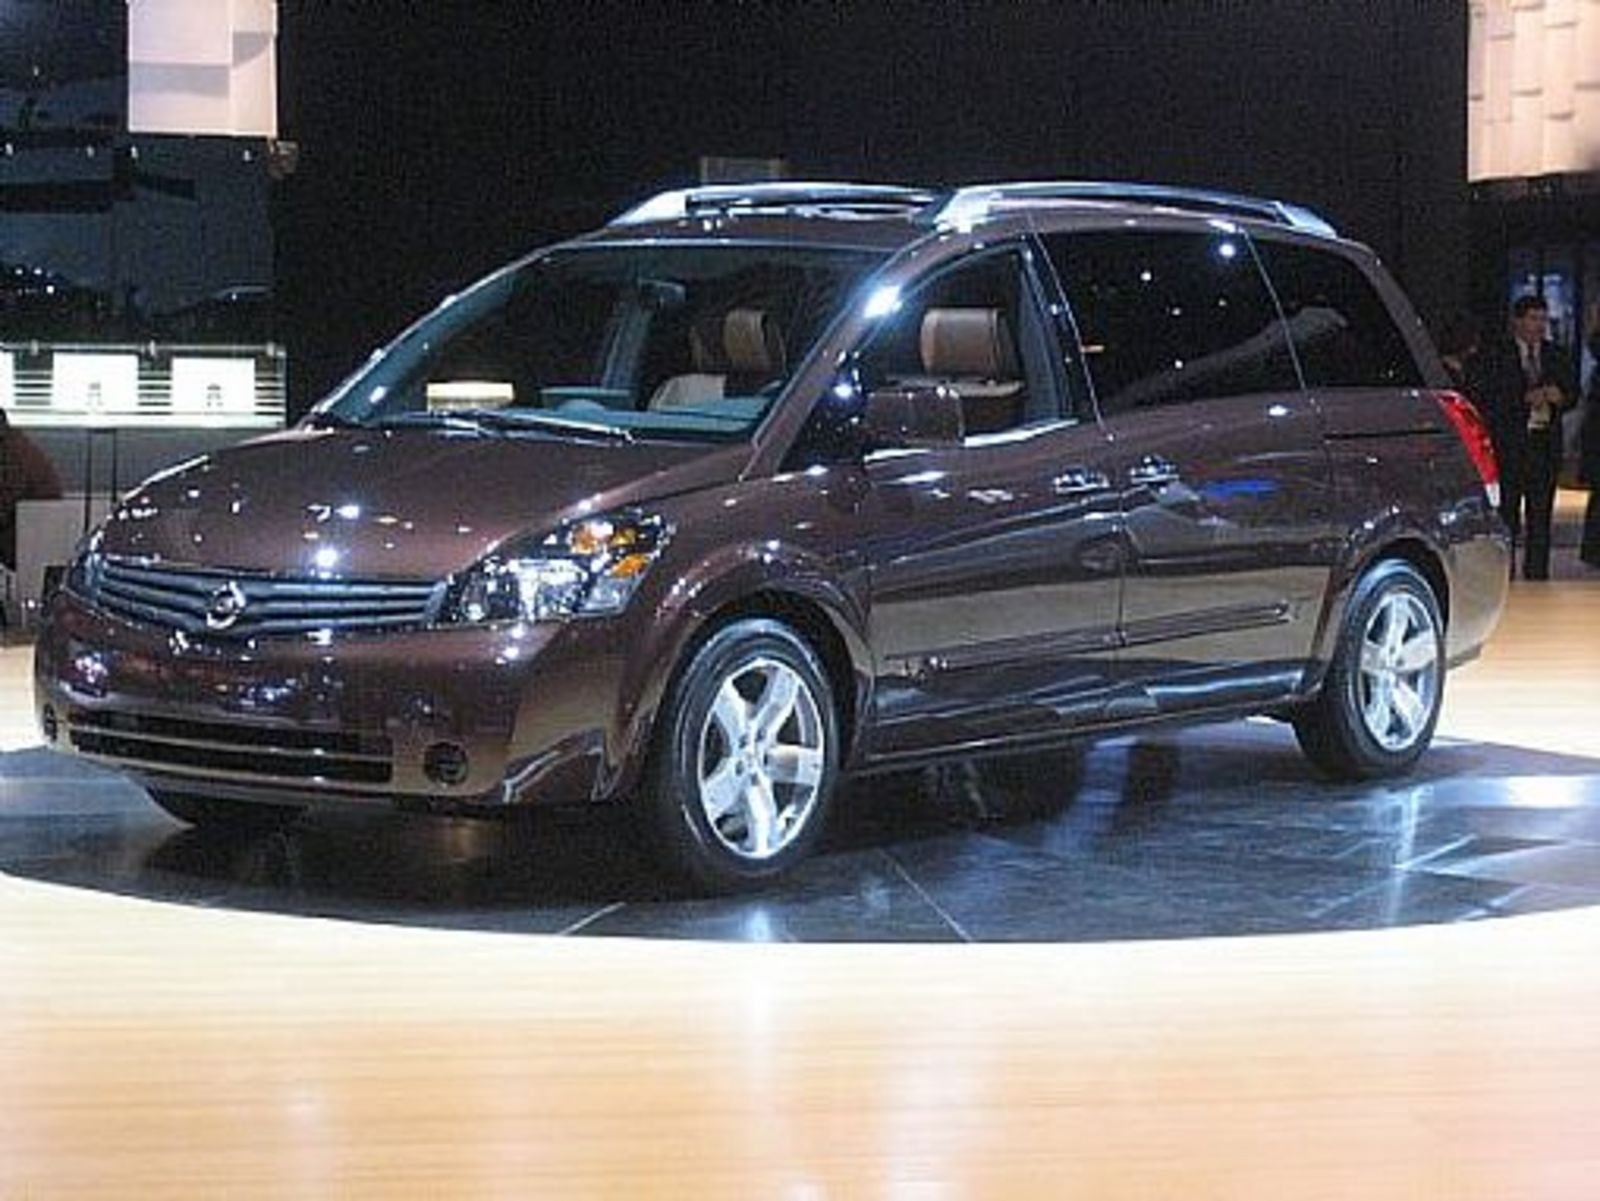 2007 Nissan Quest Review - Top Speed